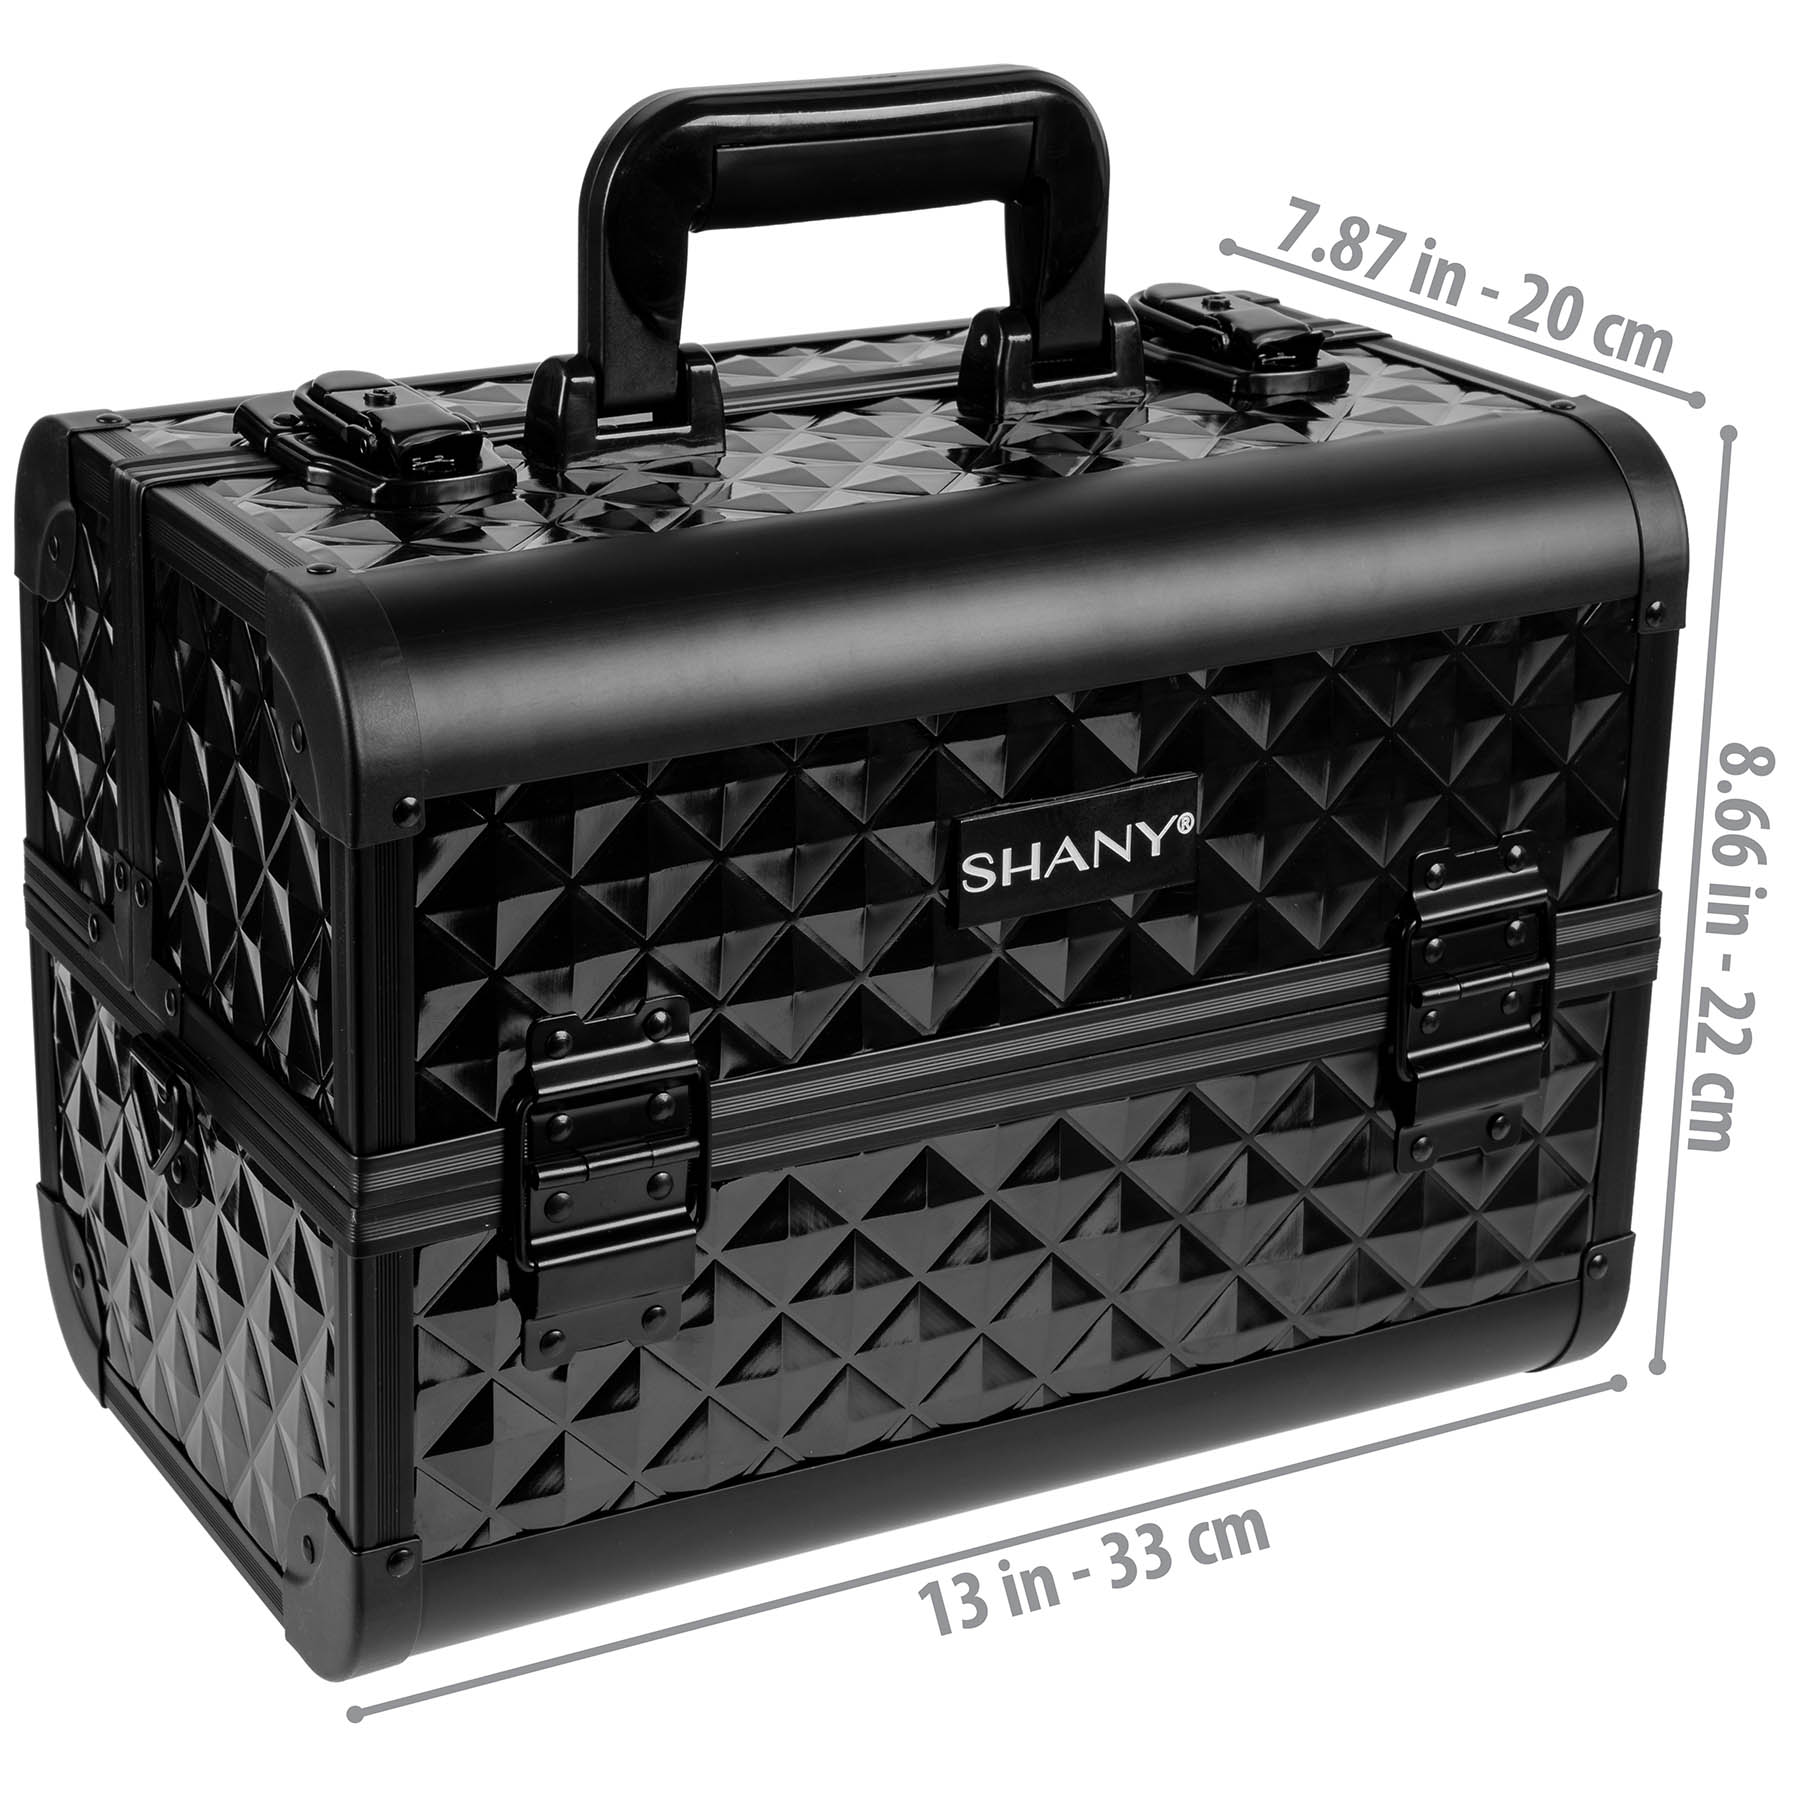 SHANY-Fantasy-Collection-Makeup-Artists-Cosmetics-Train-Case miniature 4